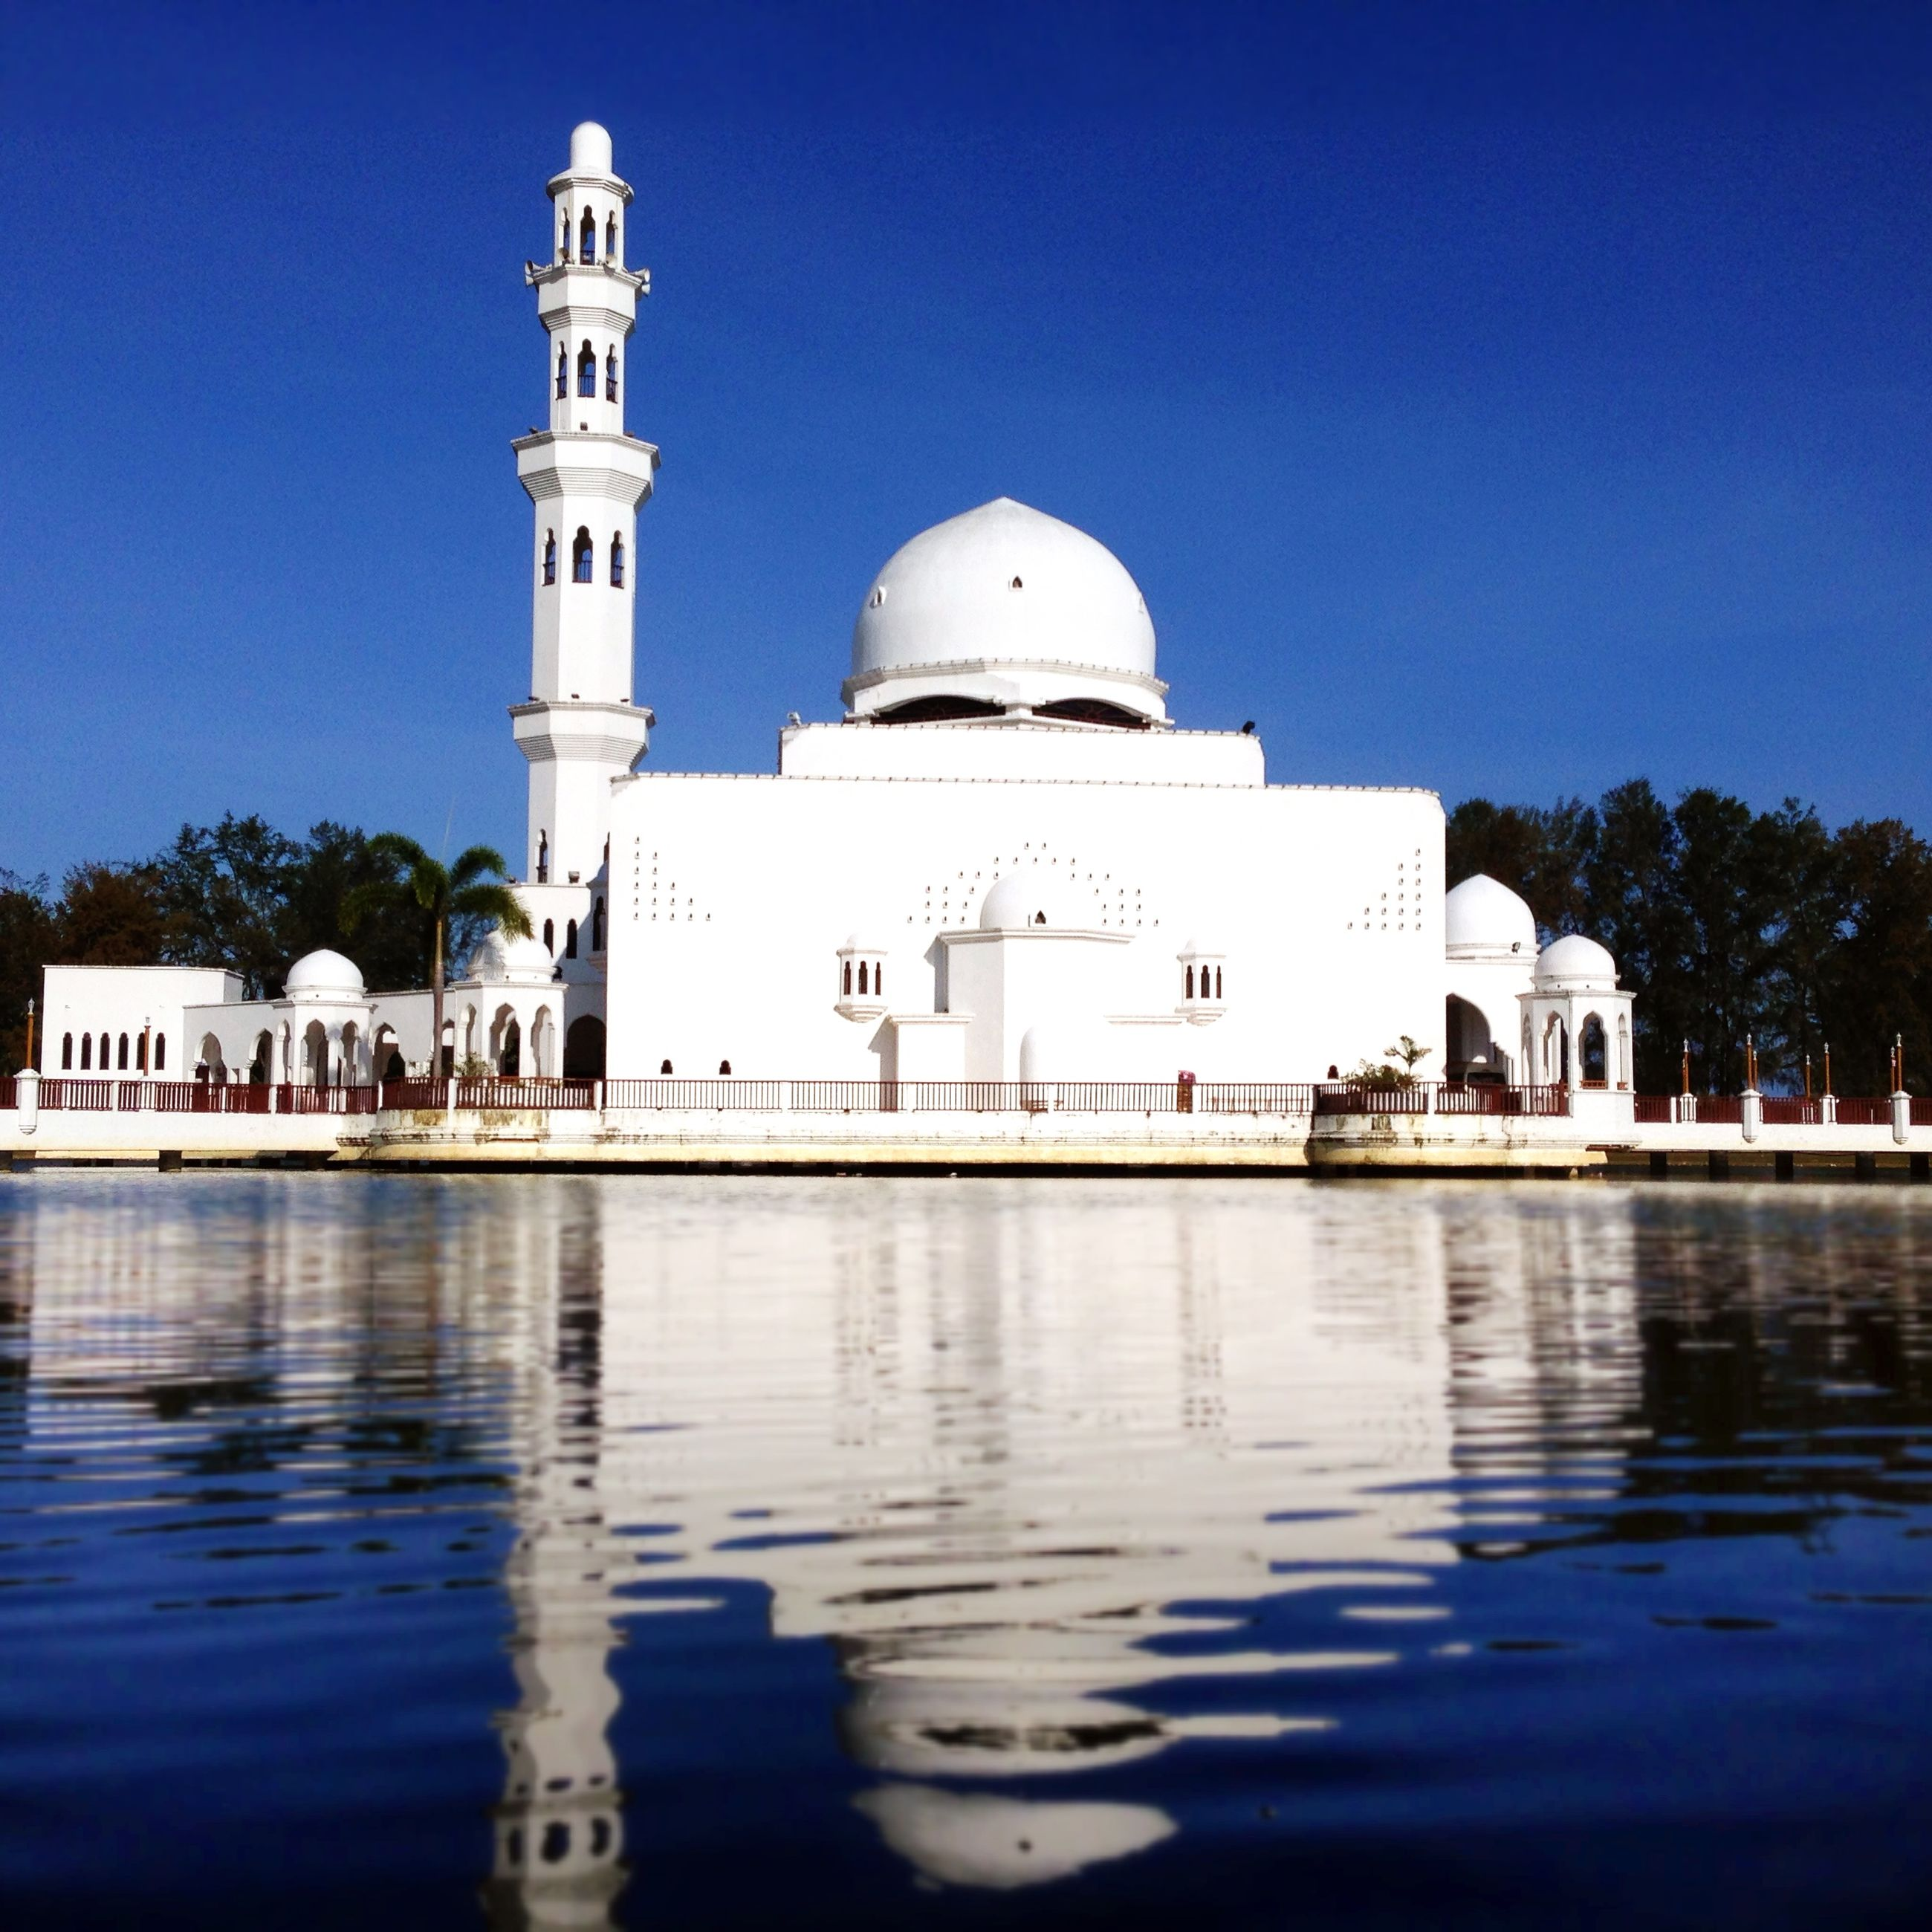 architecture, building exterior, built structure, religion, place of worship, water, clear sky, dome, church, spirituality, blue, waterfront, mosque, famous place, islam, travel destinations, reflection